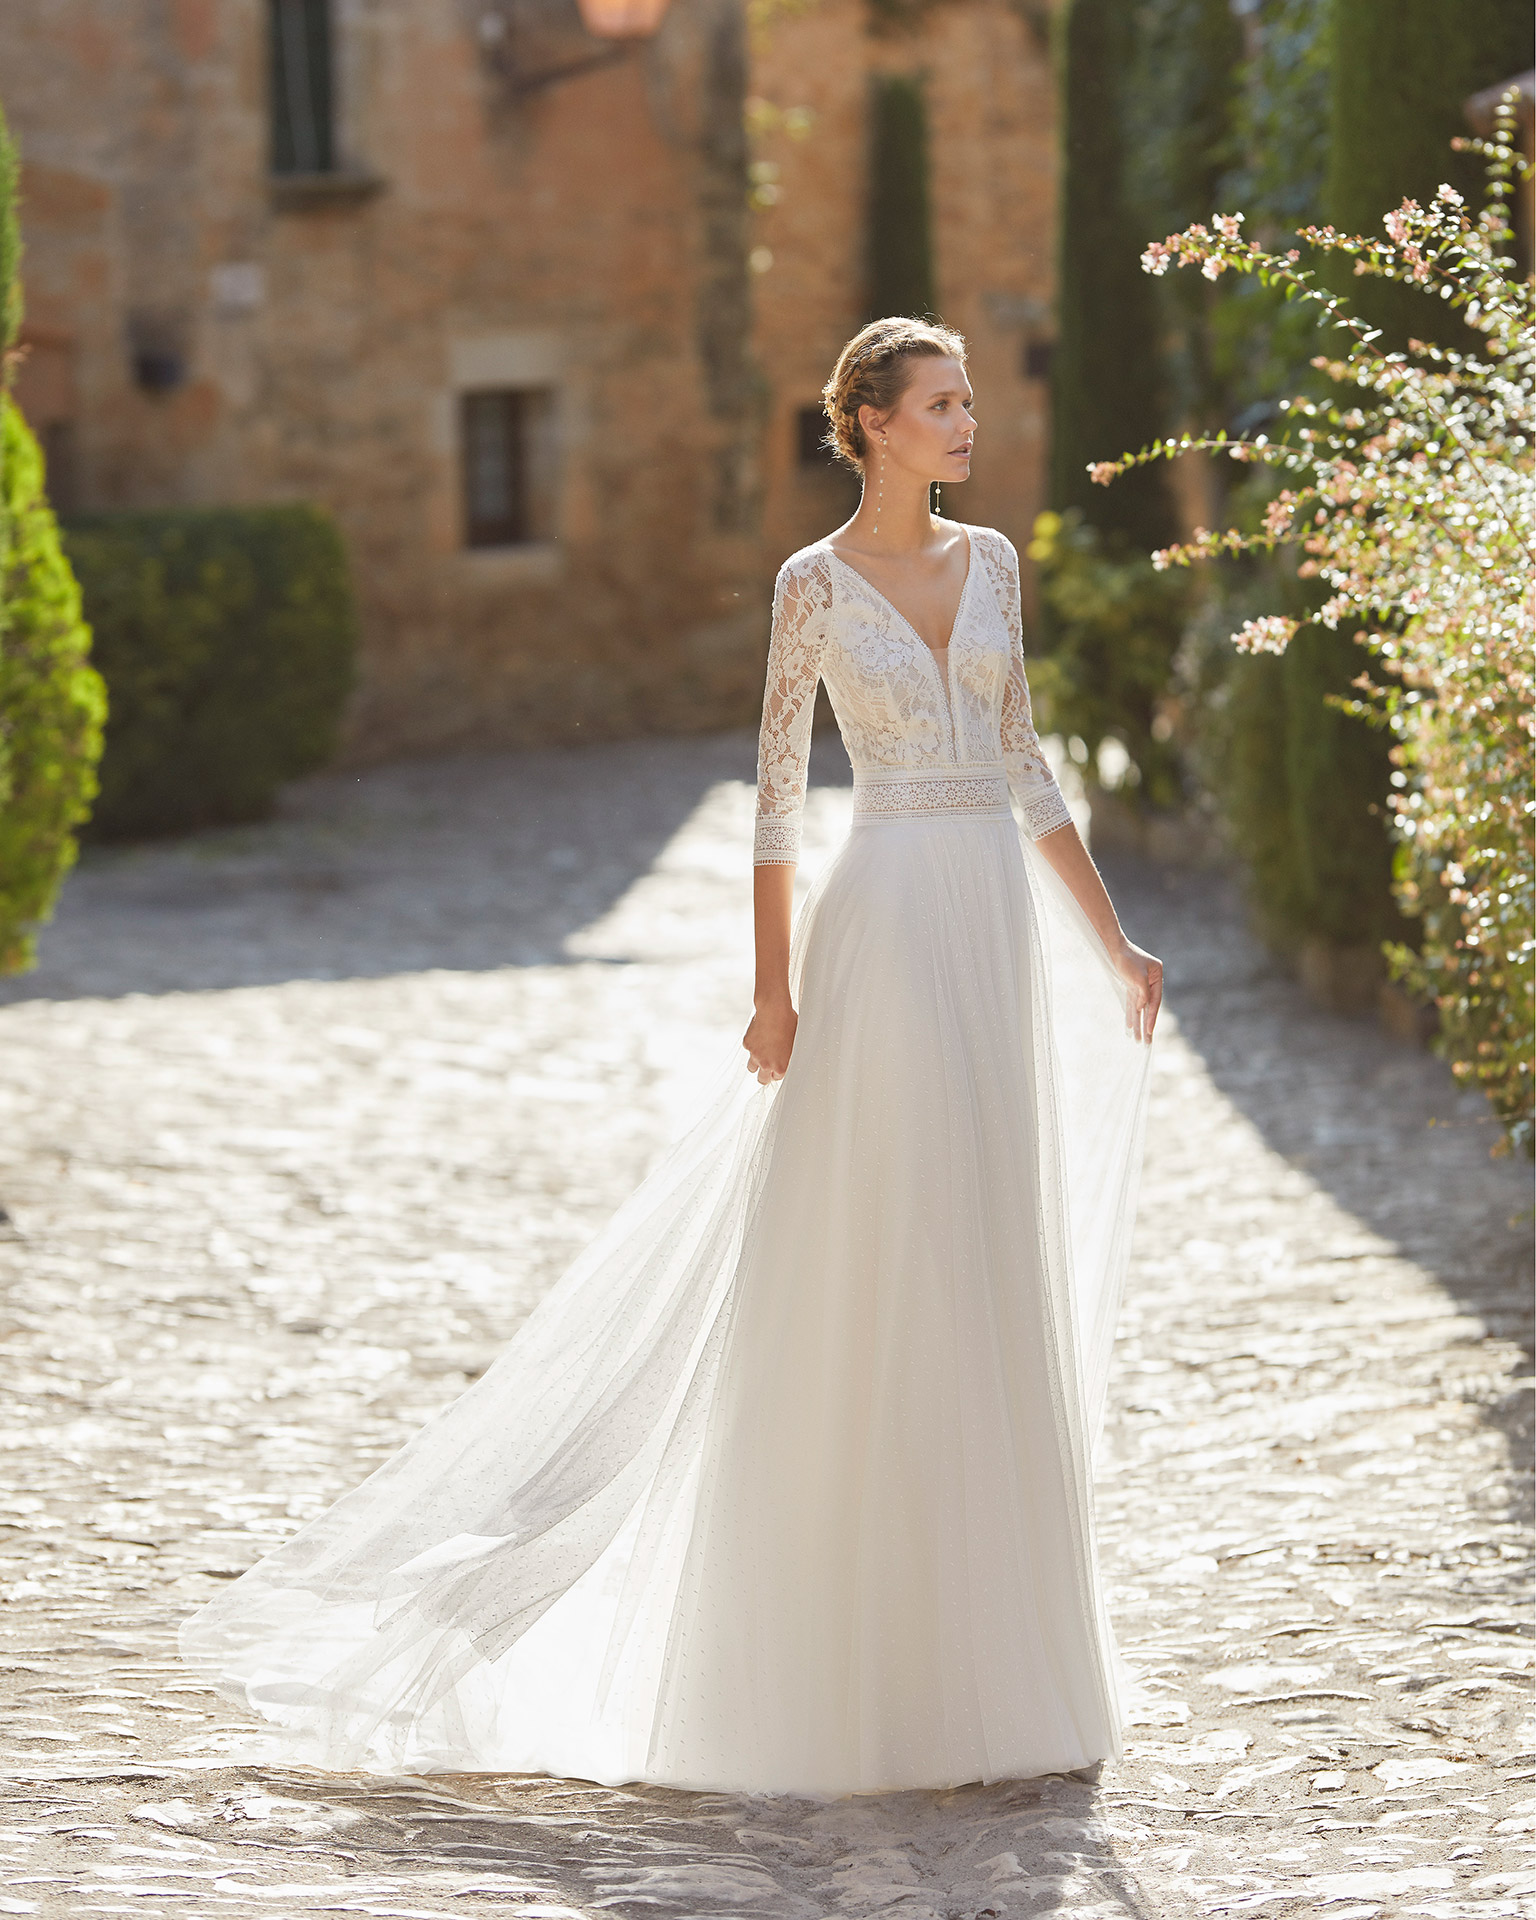 Delicate sheath-style wedding dress with a lace bodice; with a V-neckline, a closed back with lace and pearl buttons, and three-quarter sleeves. A dreamlike Alma Novia model in dot tulle. 2022 ALMANOVIA Collection.